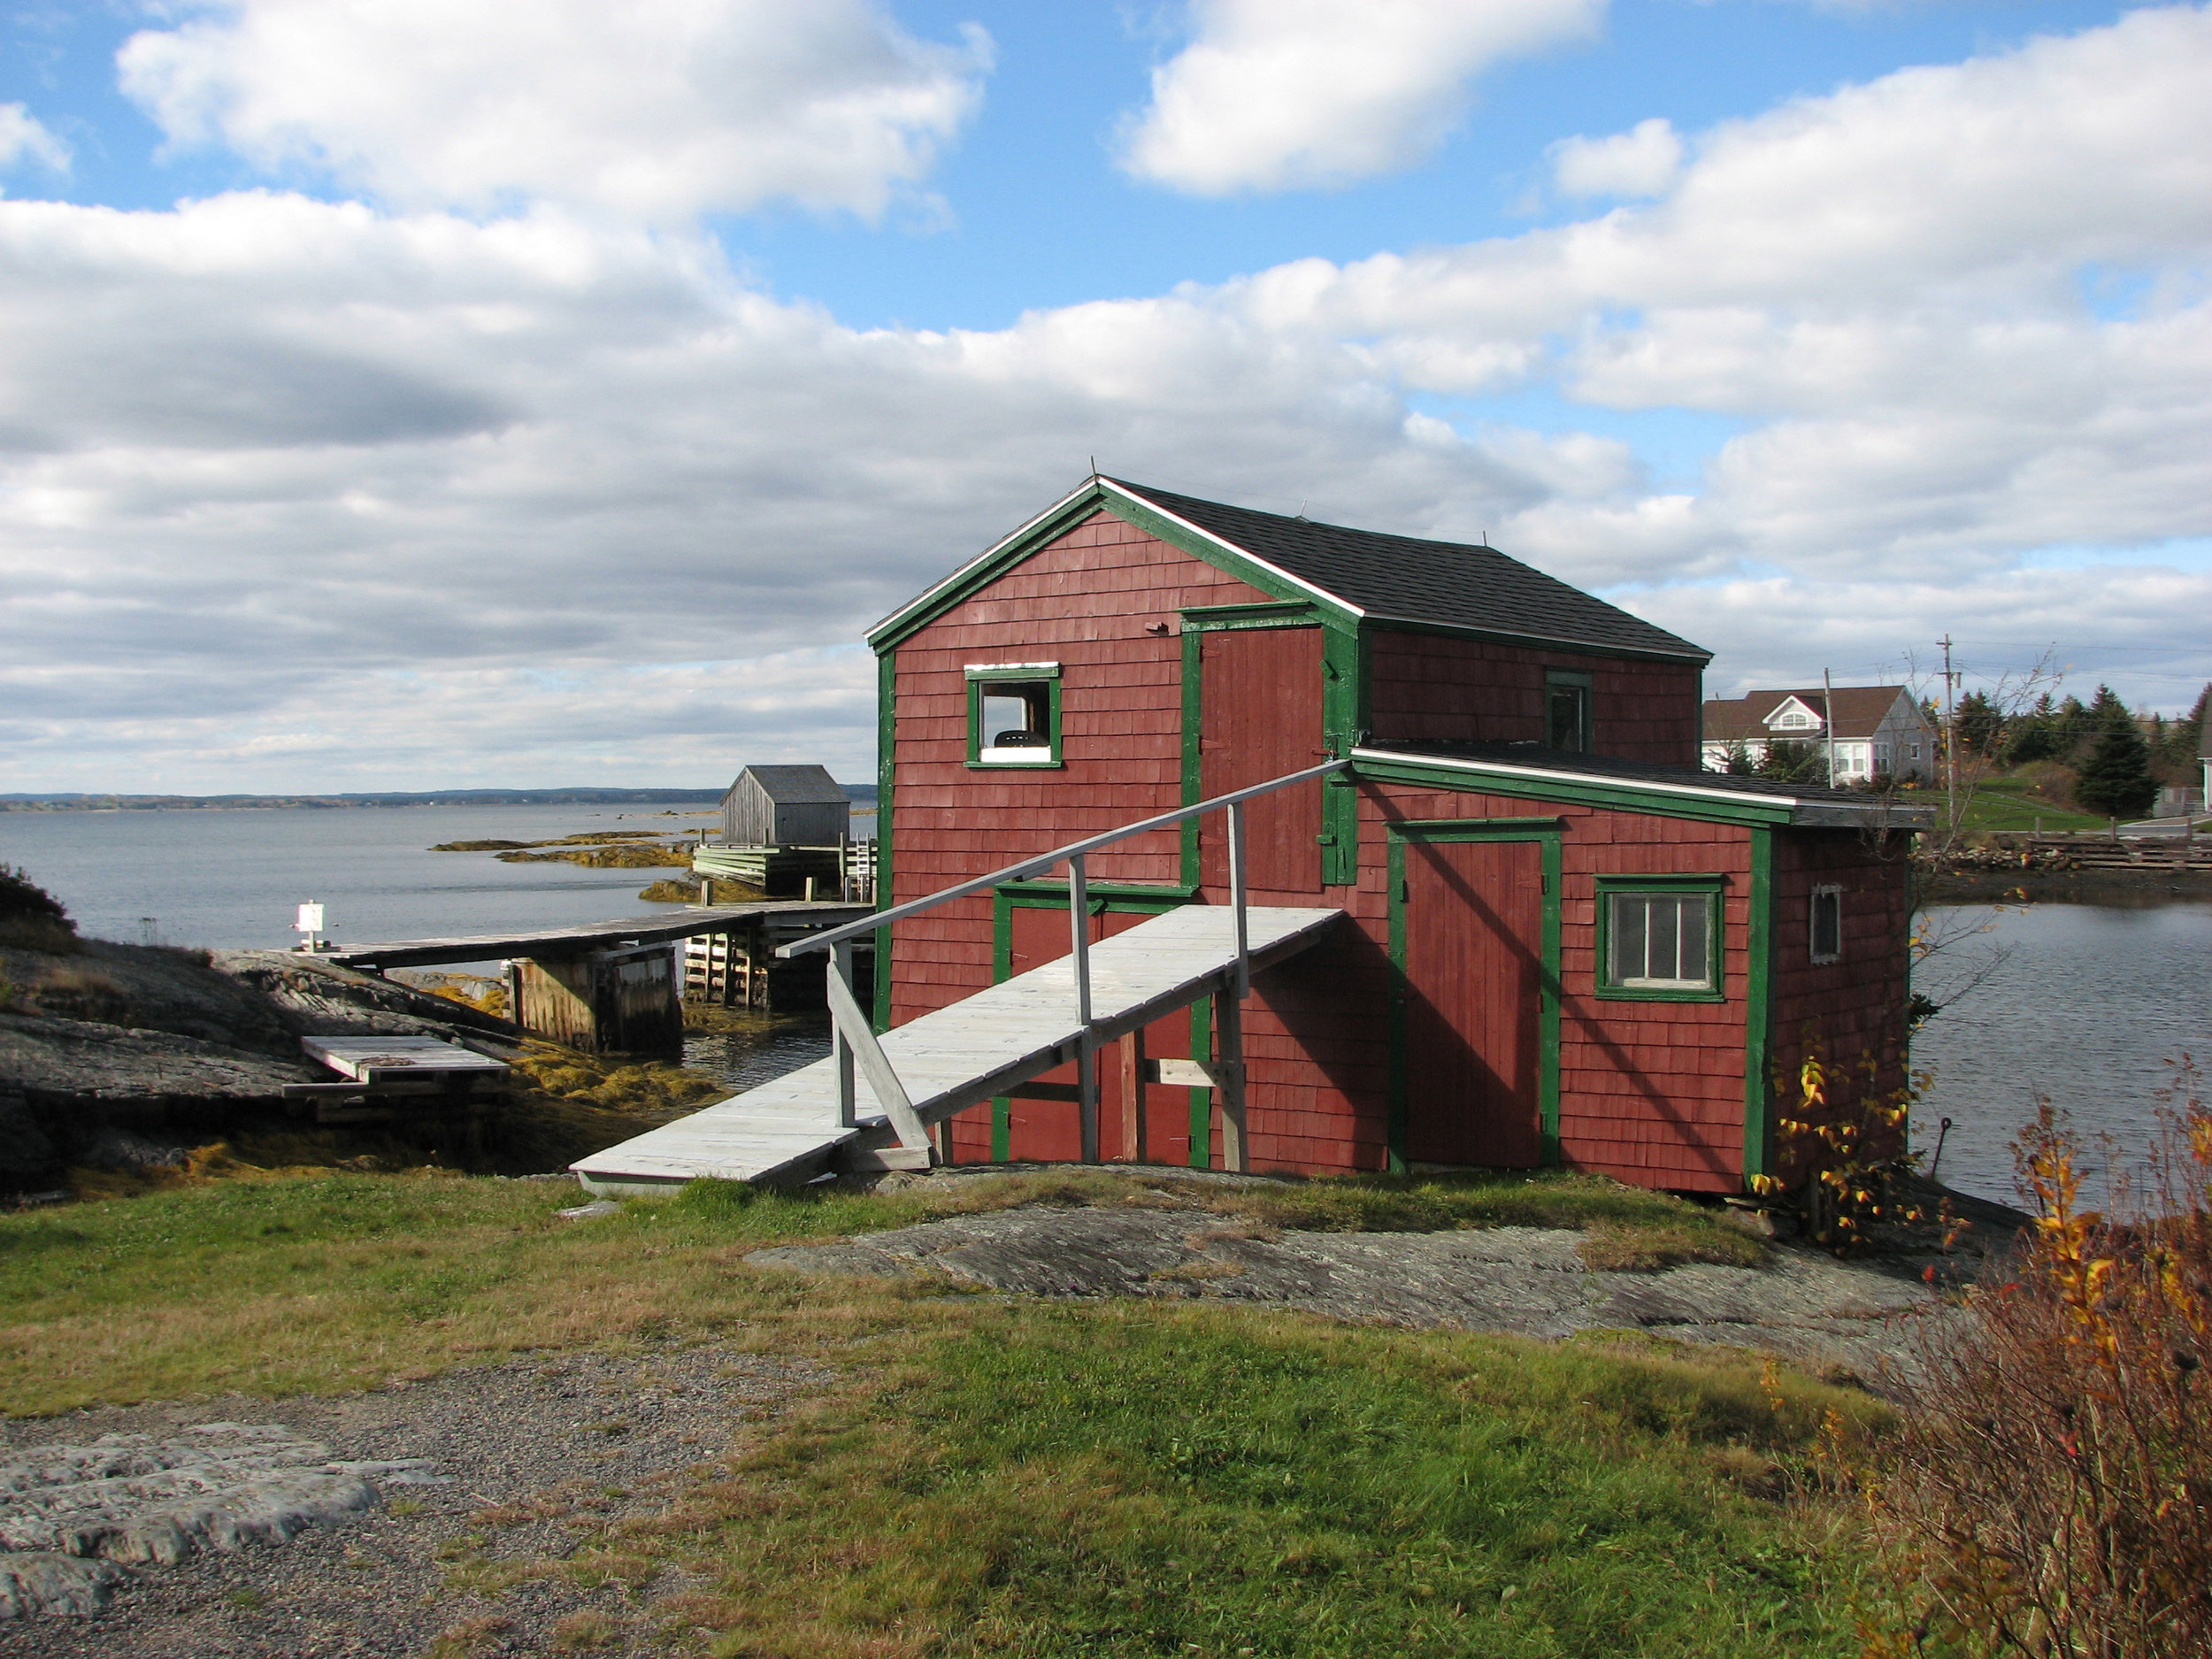 For more than 15 years, Frank, Dittenhafer founder and principal at Murphy & Dittenhafer Architects, and his wife, Sue Ann Kline, have been visiting Nova Scotia, a small Maritime province on the eastern edge of Canada.